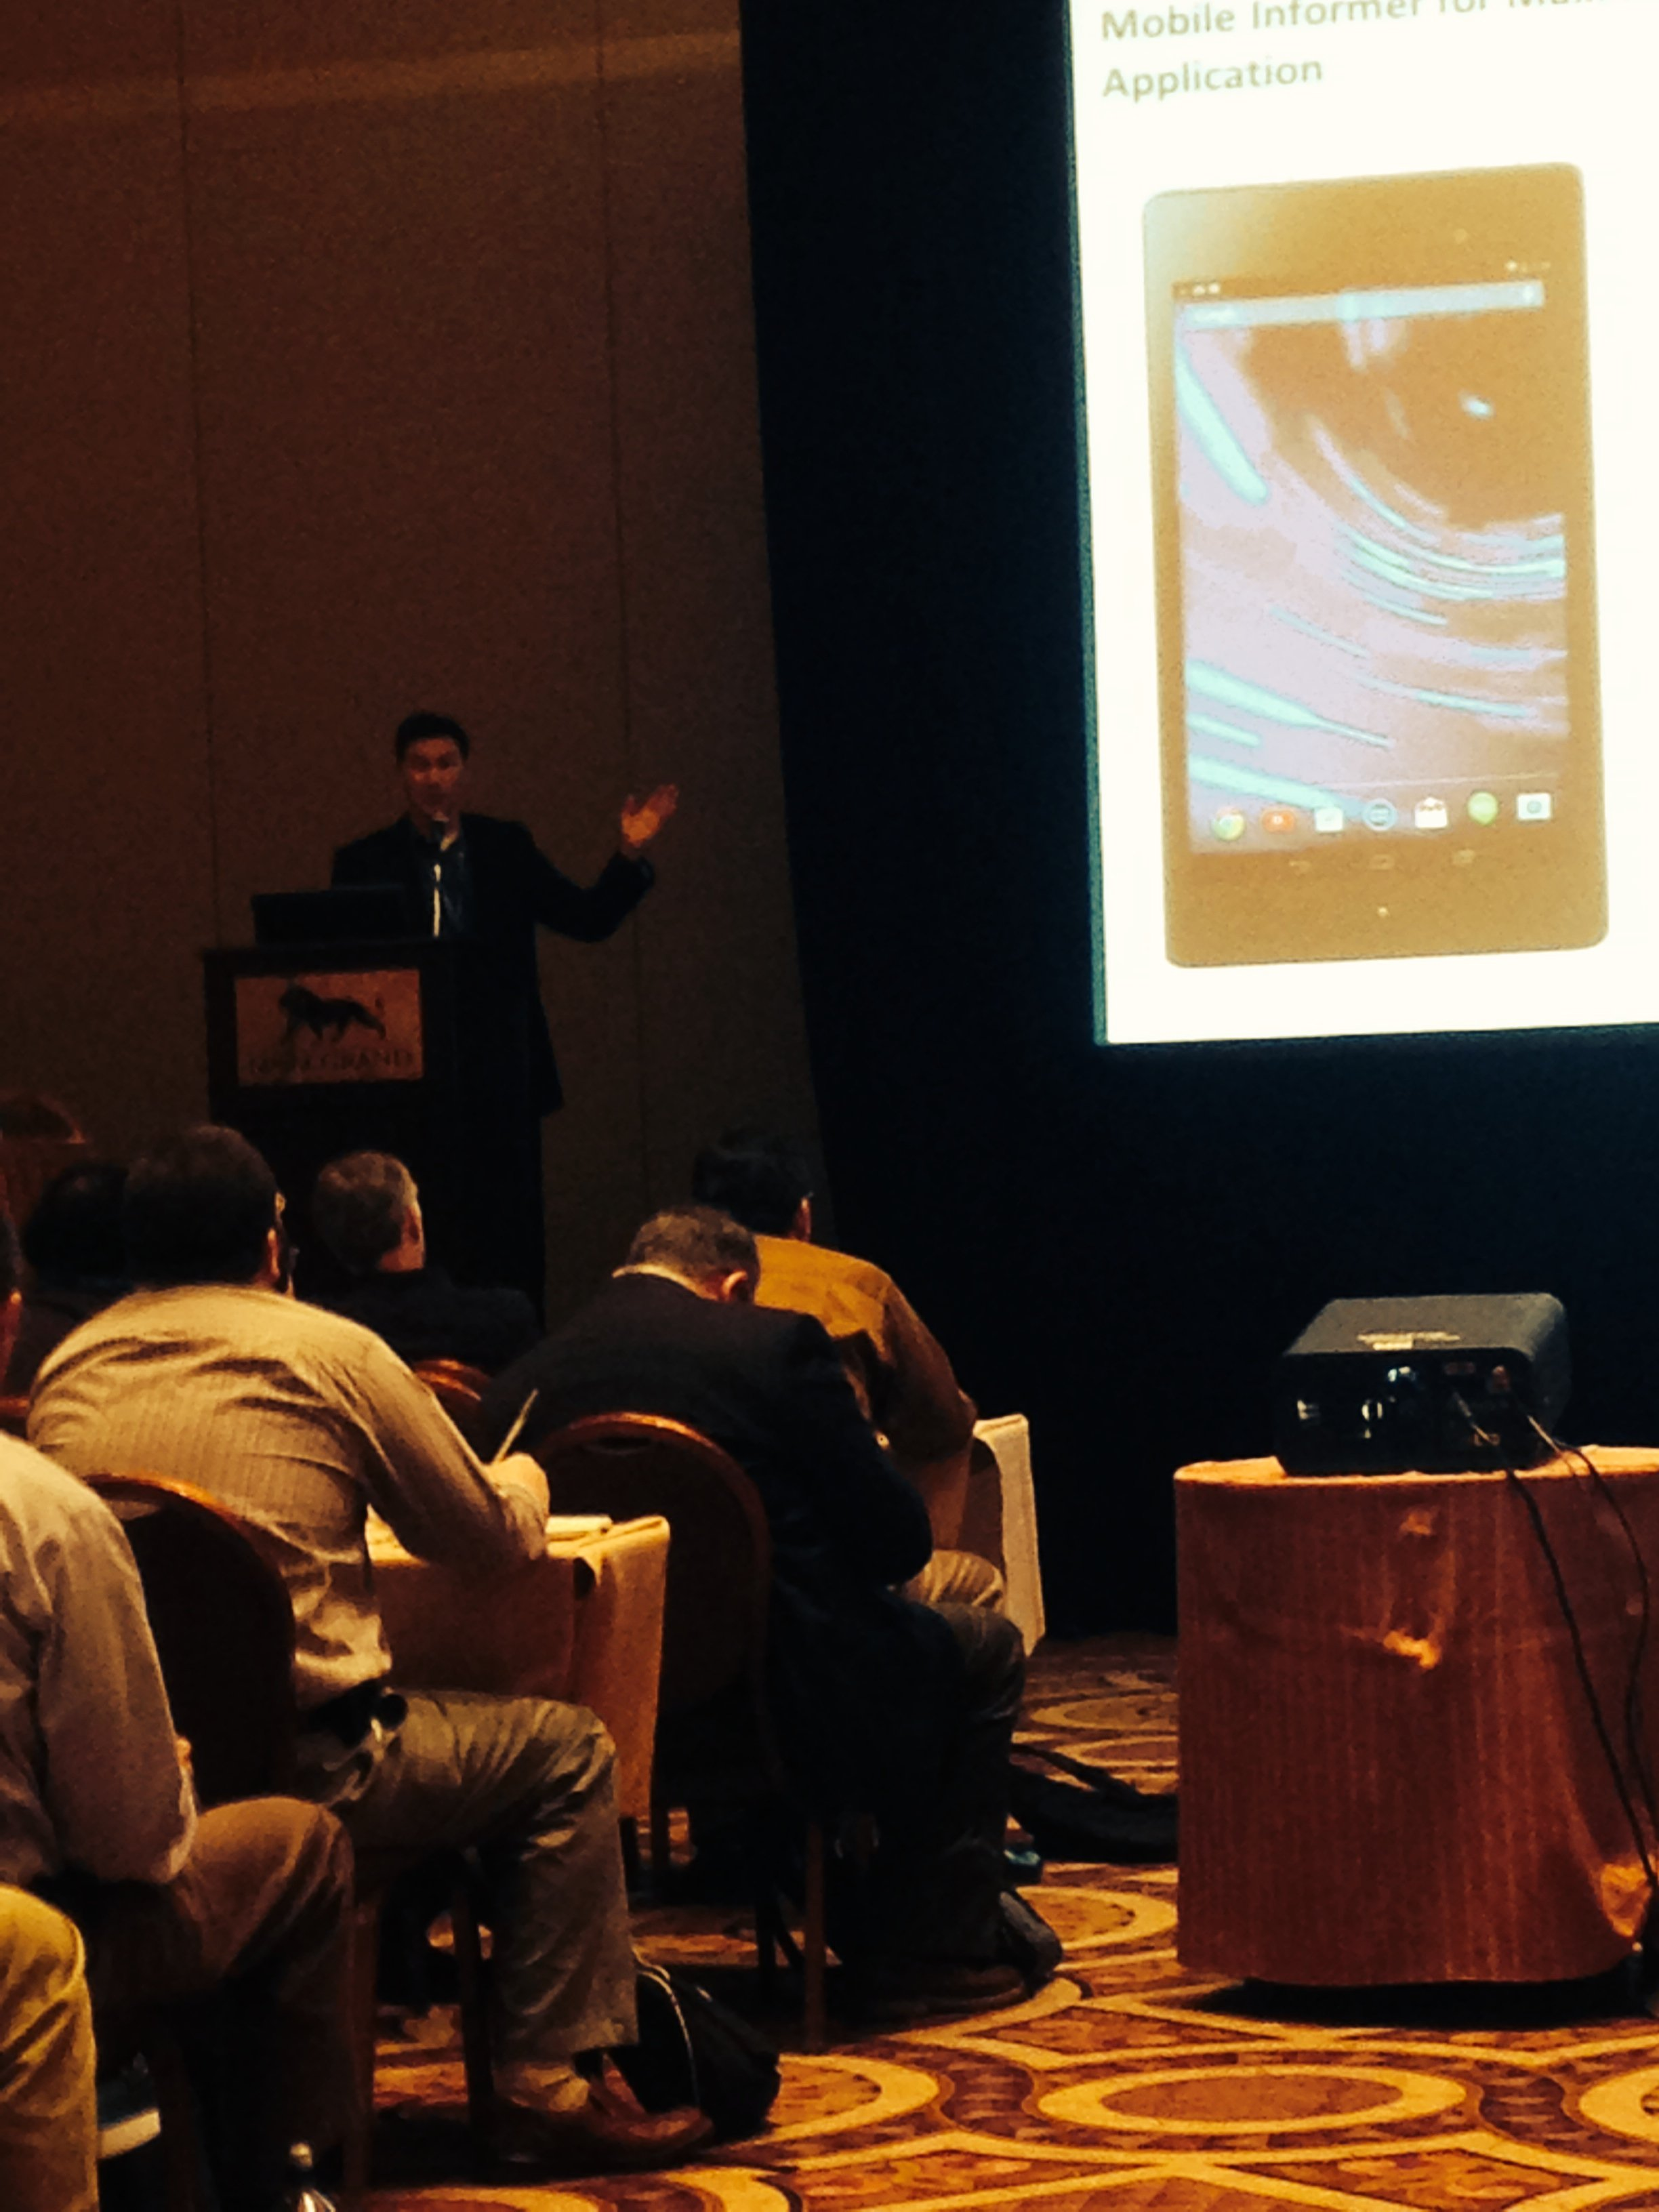 Fully Packed Mobile Maximo Session